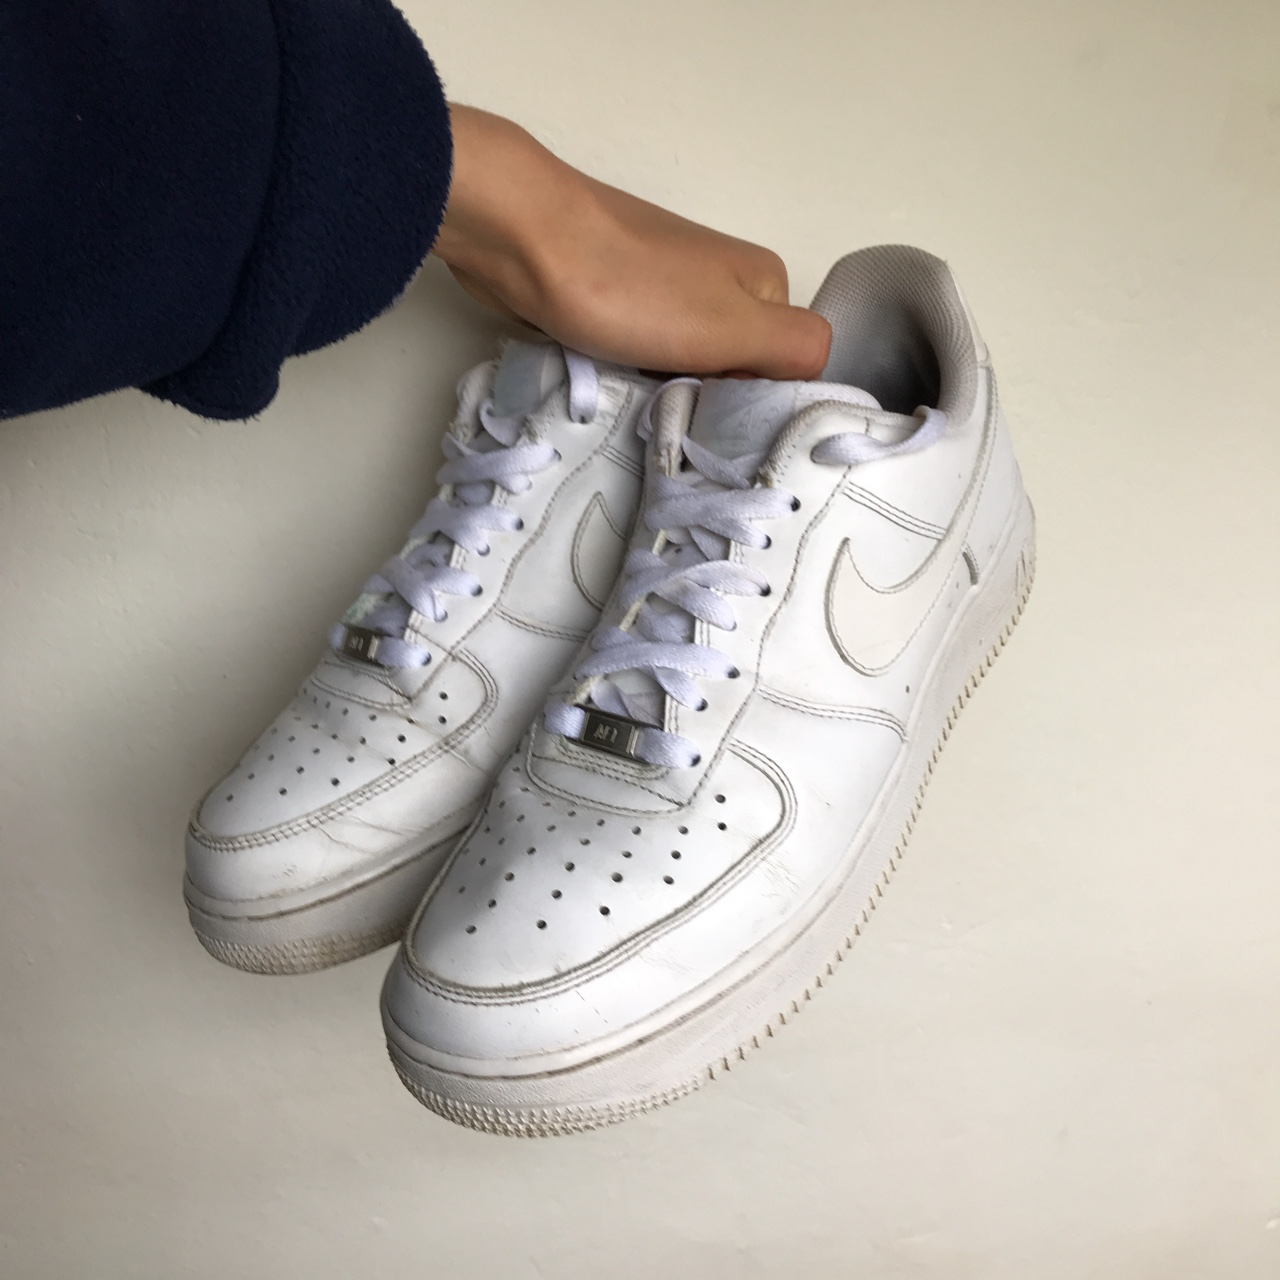 Nike Air Force 1 white . 6/10 condition